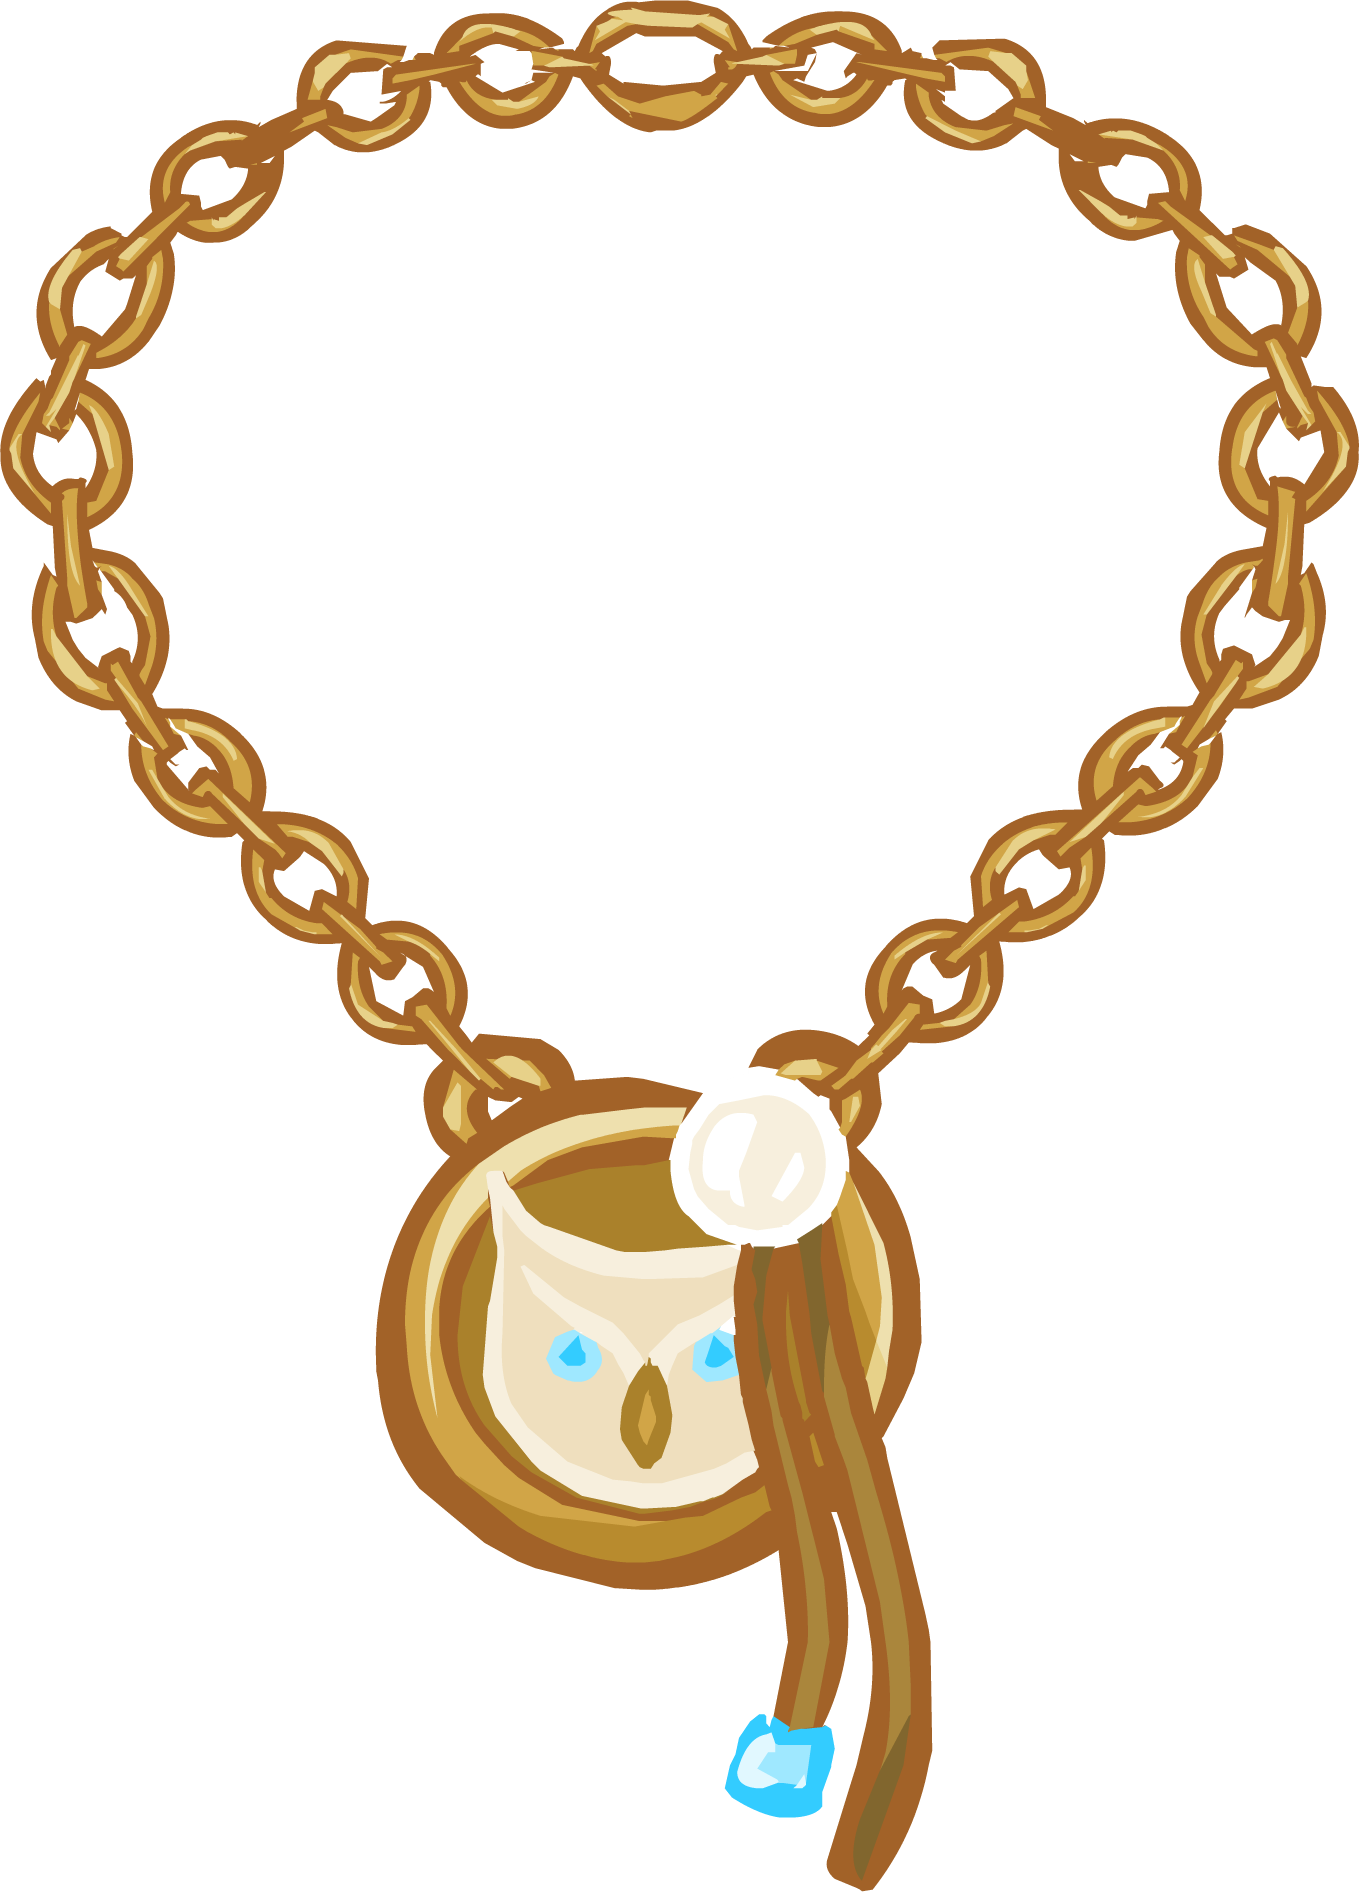 Necklace clipart closed neck. Gold charm club penguin